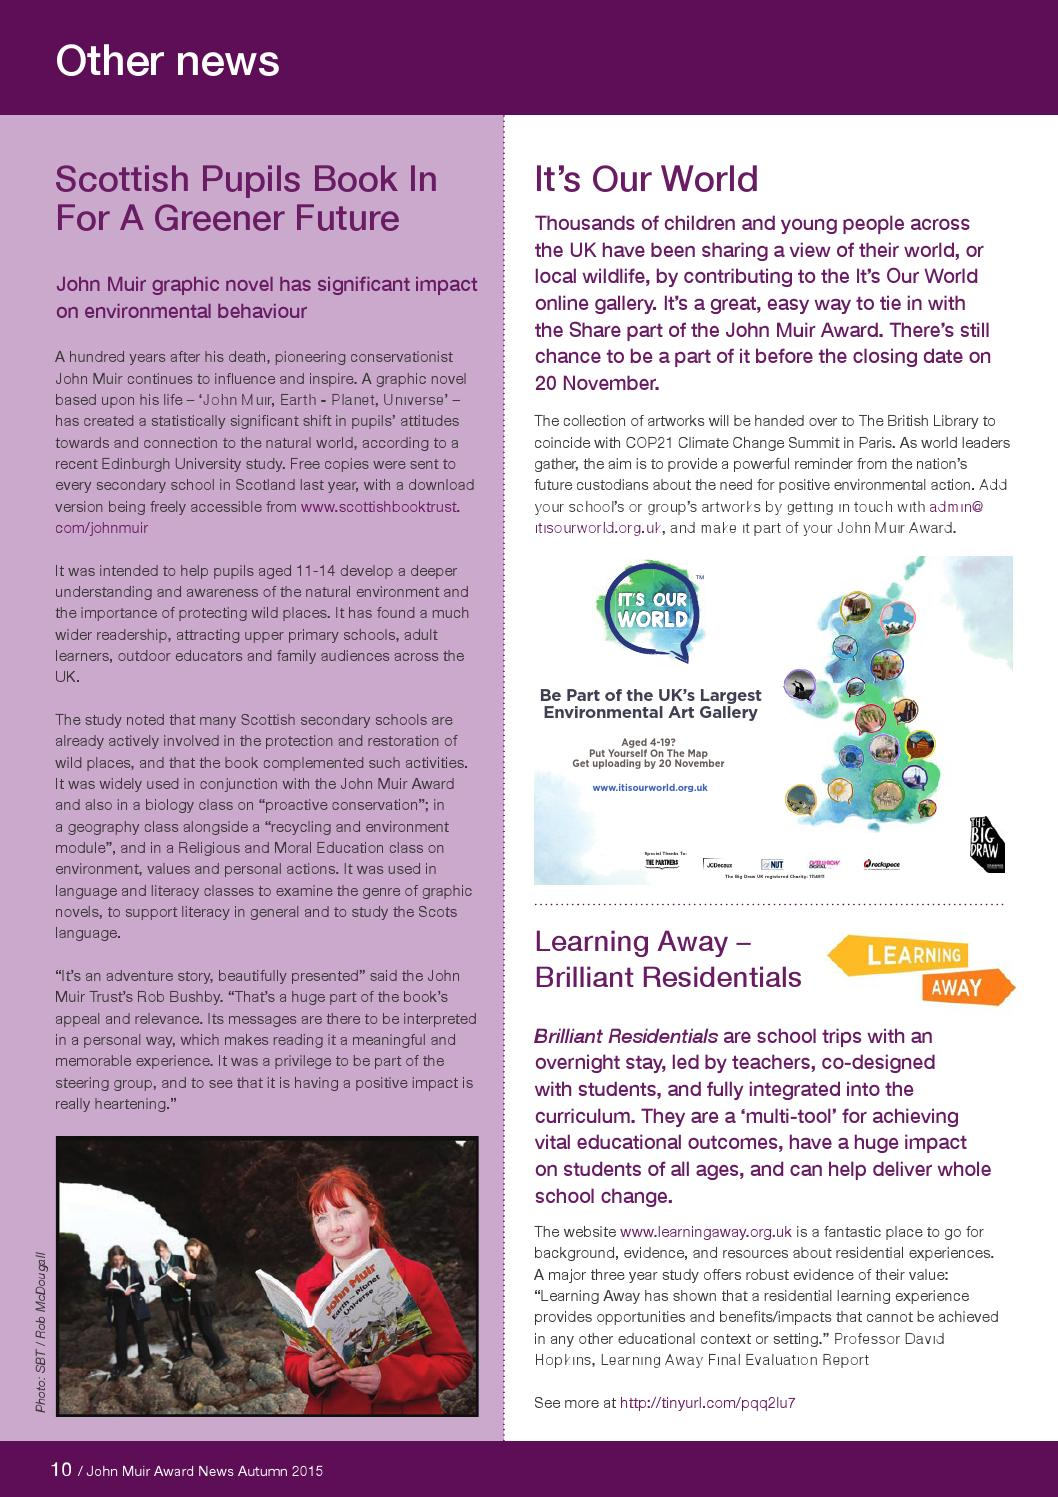 John Muir Award Autumn Newsletter 2015